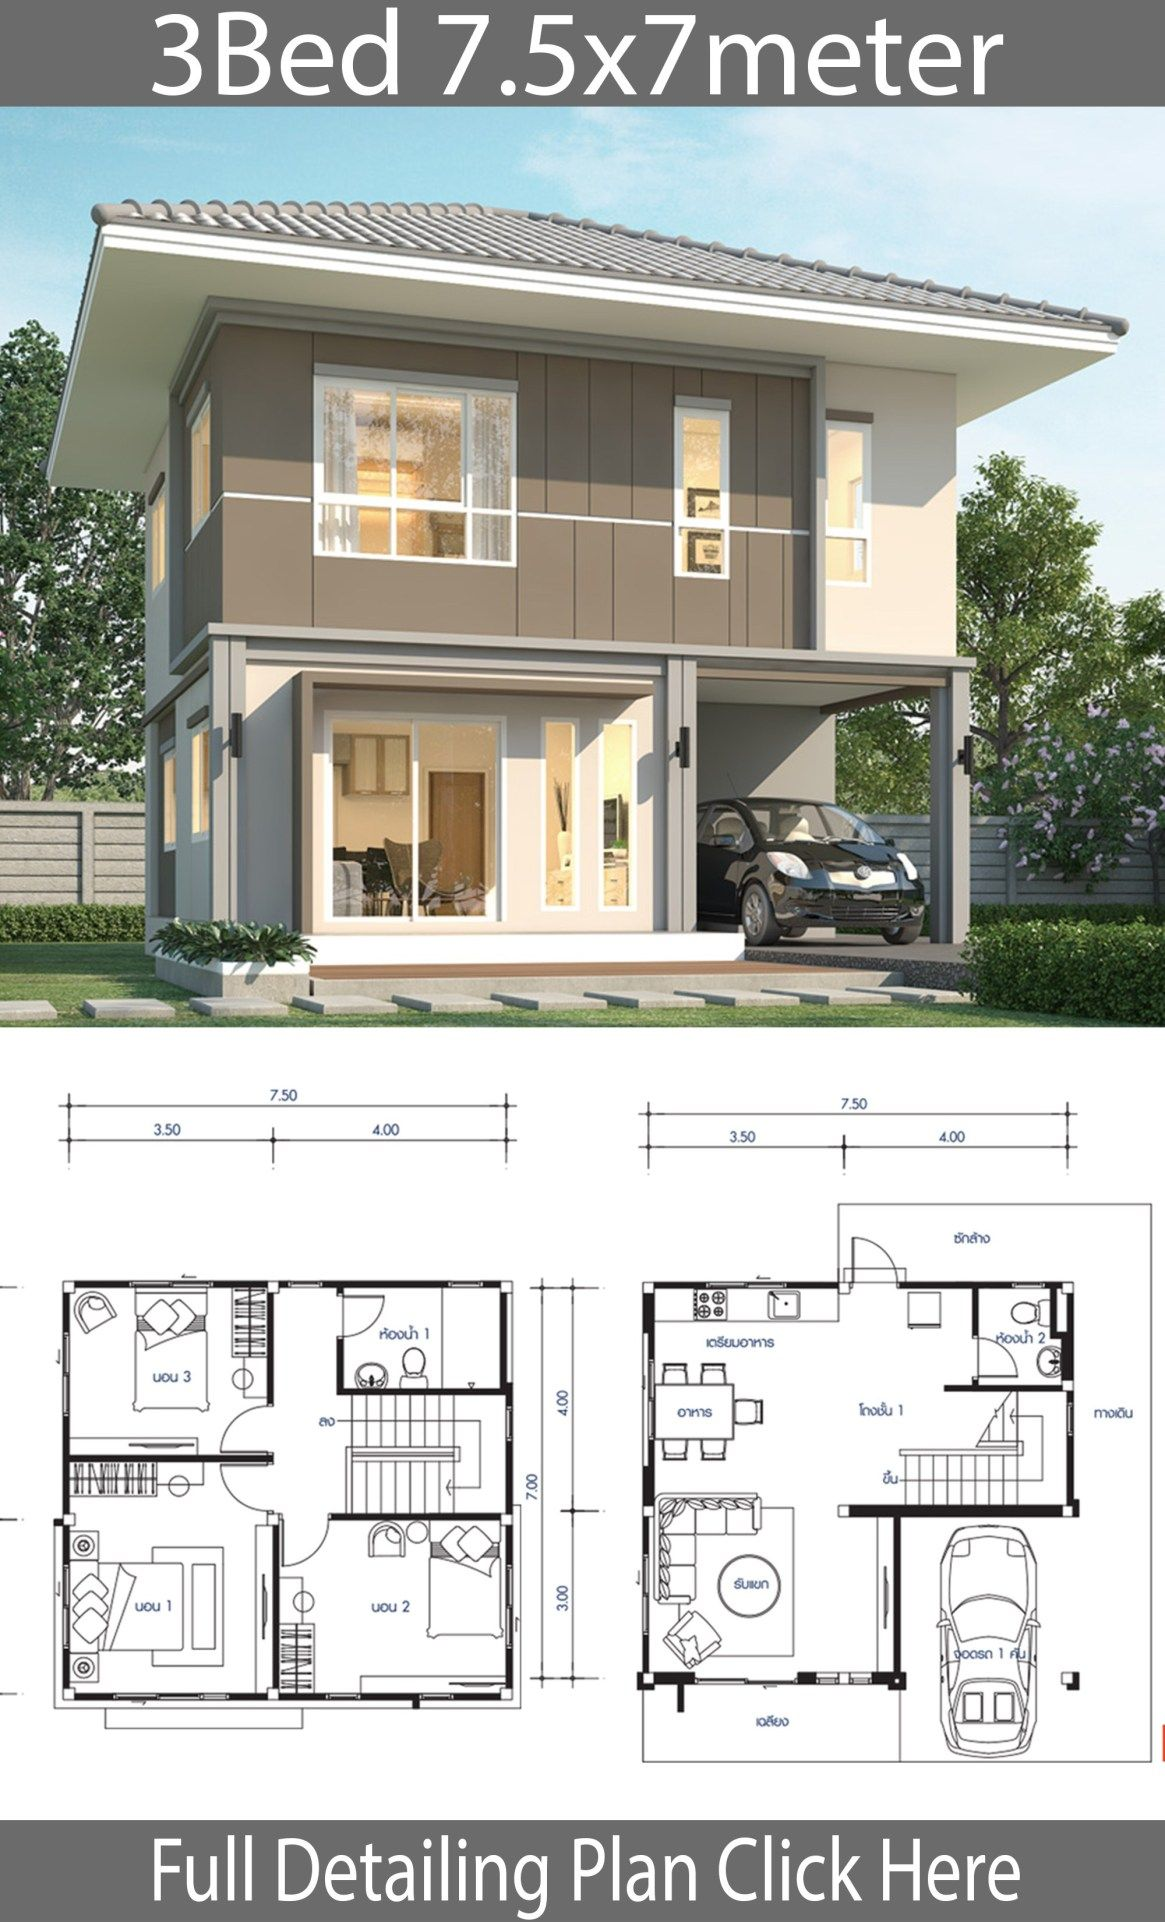 House Design 7 5x7m With 3 Bedrooms Home Design With Plansearch